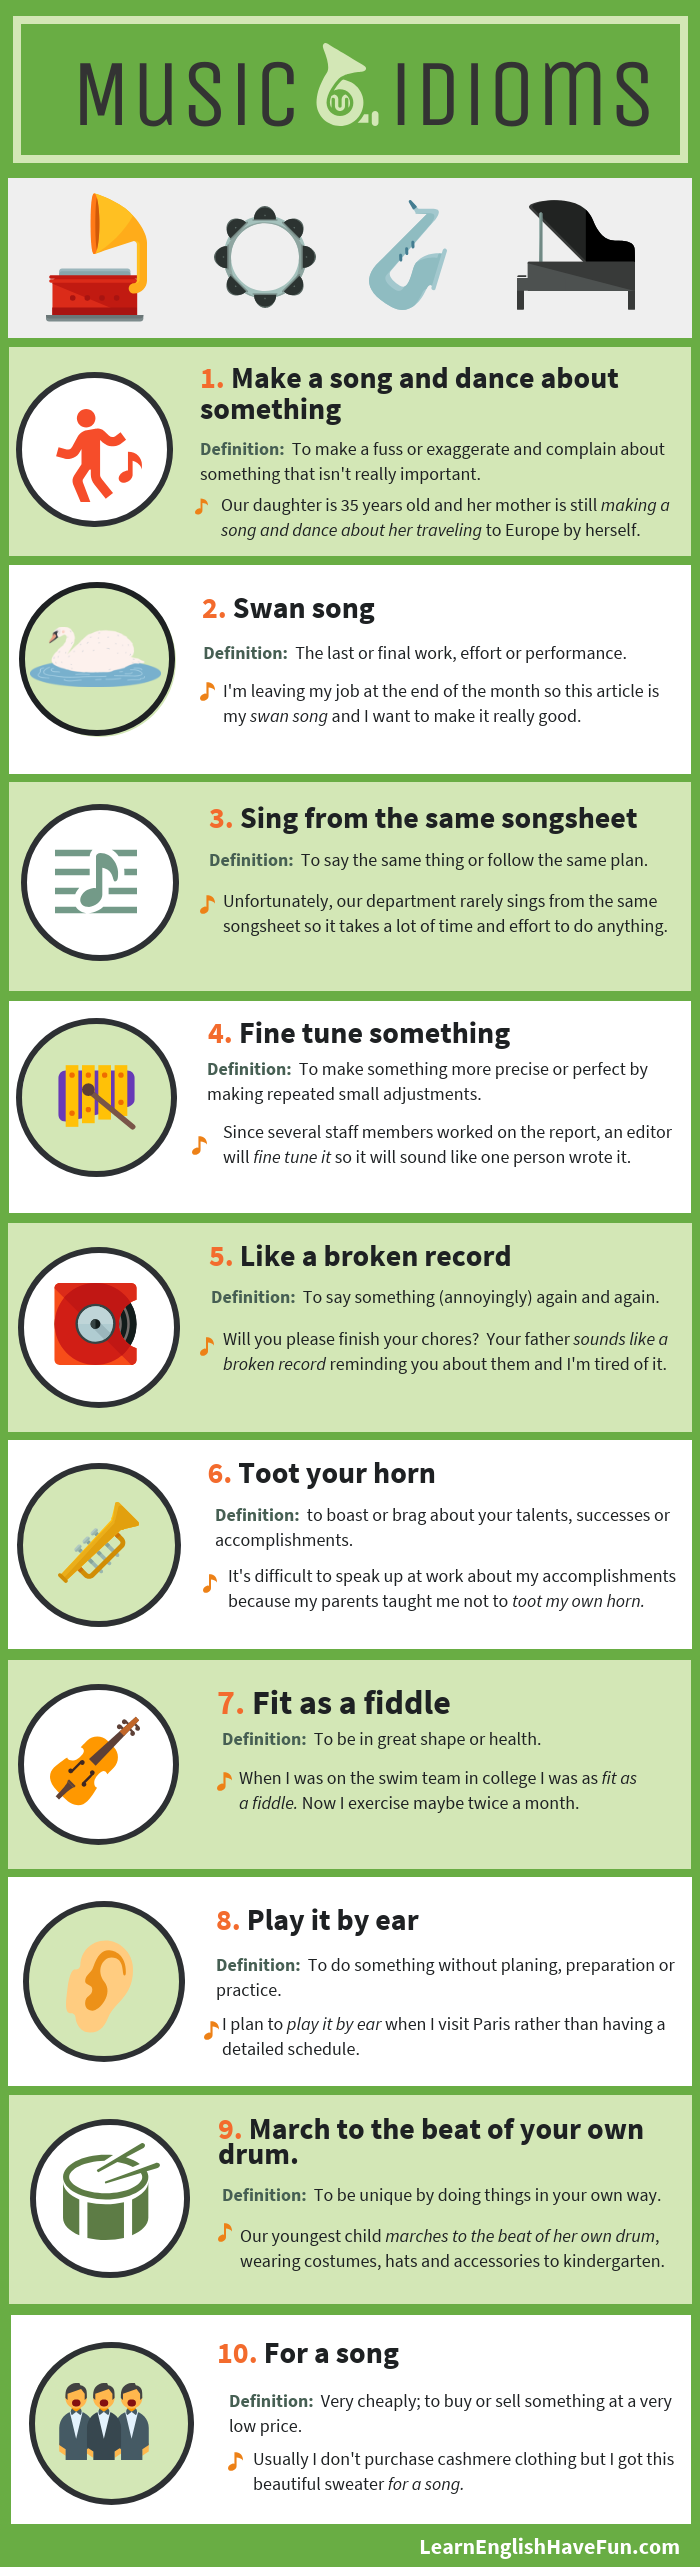 An infographic with 10 music idioms listed on this webpage with their meanings and sentence examples.